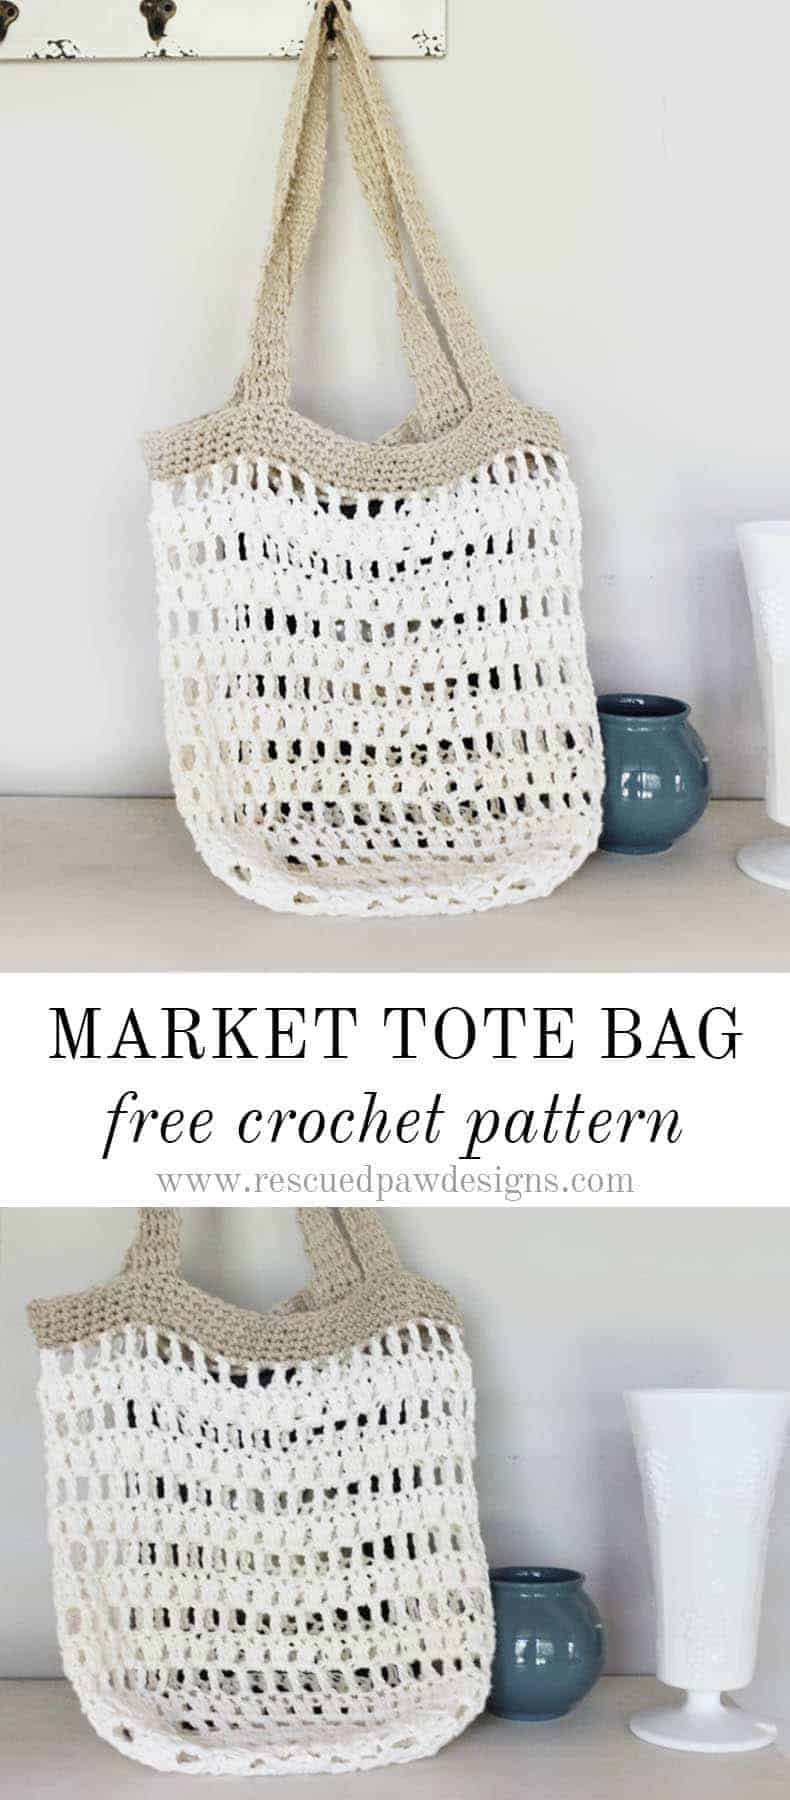 Market Tote Bag Crochet Pattern - Free Crochet Pattern from Rescued Paw Designs - Click to Make now or Pin and Save for Later!